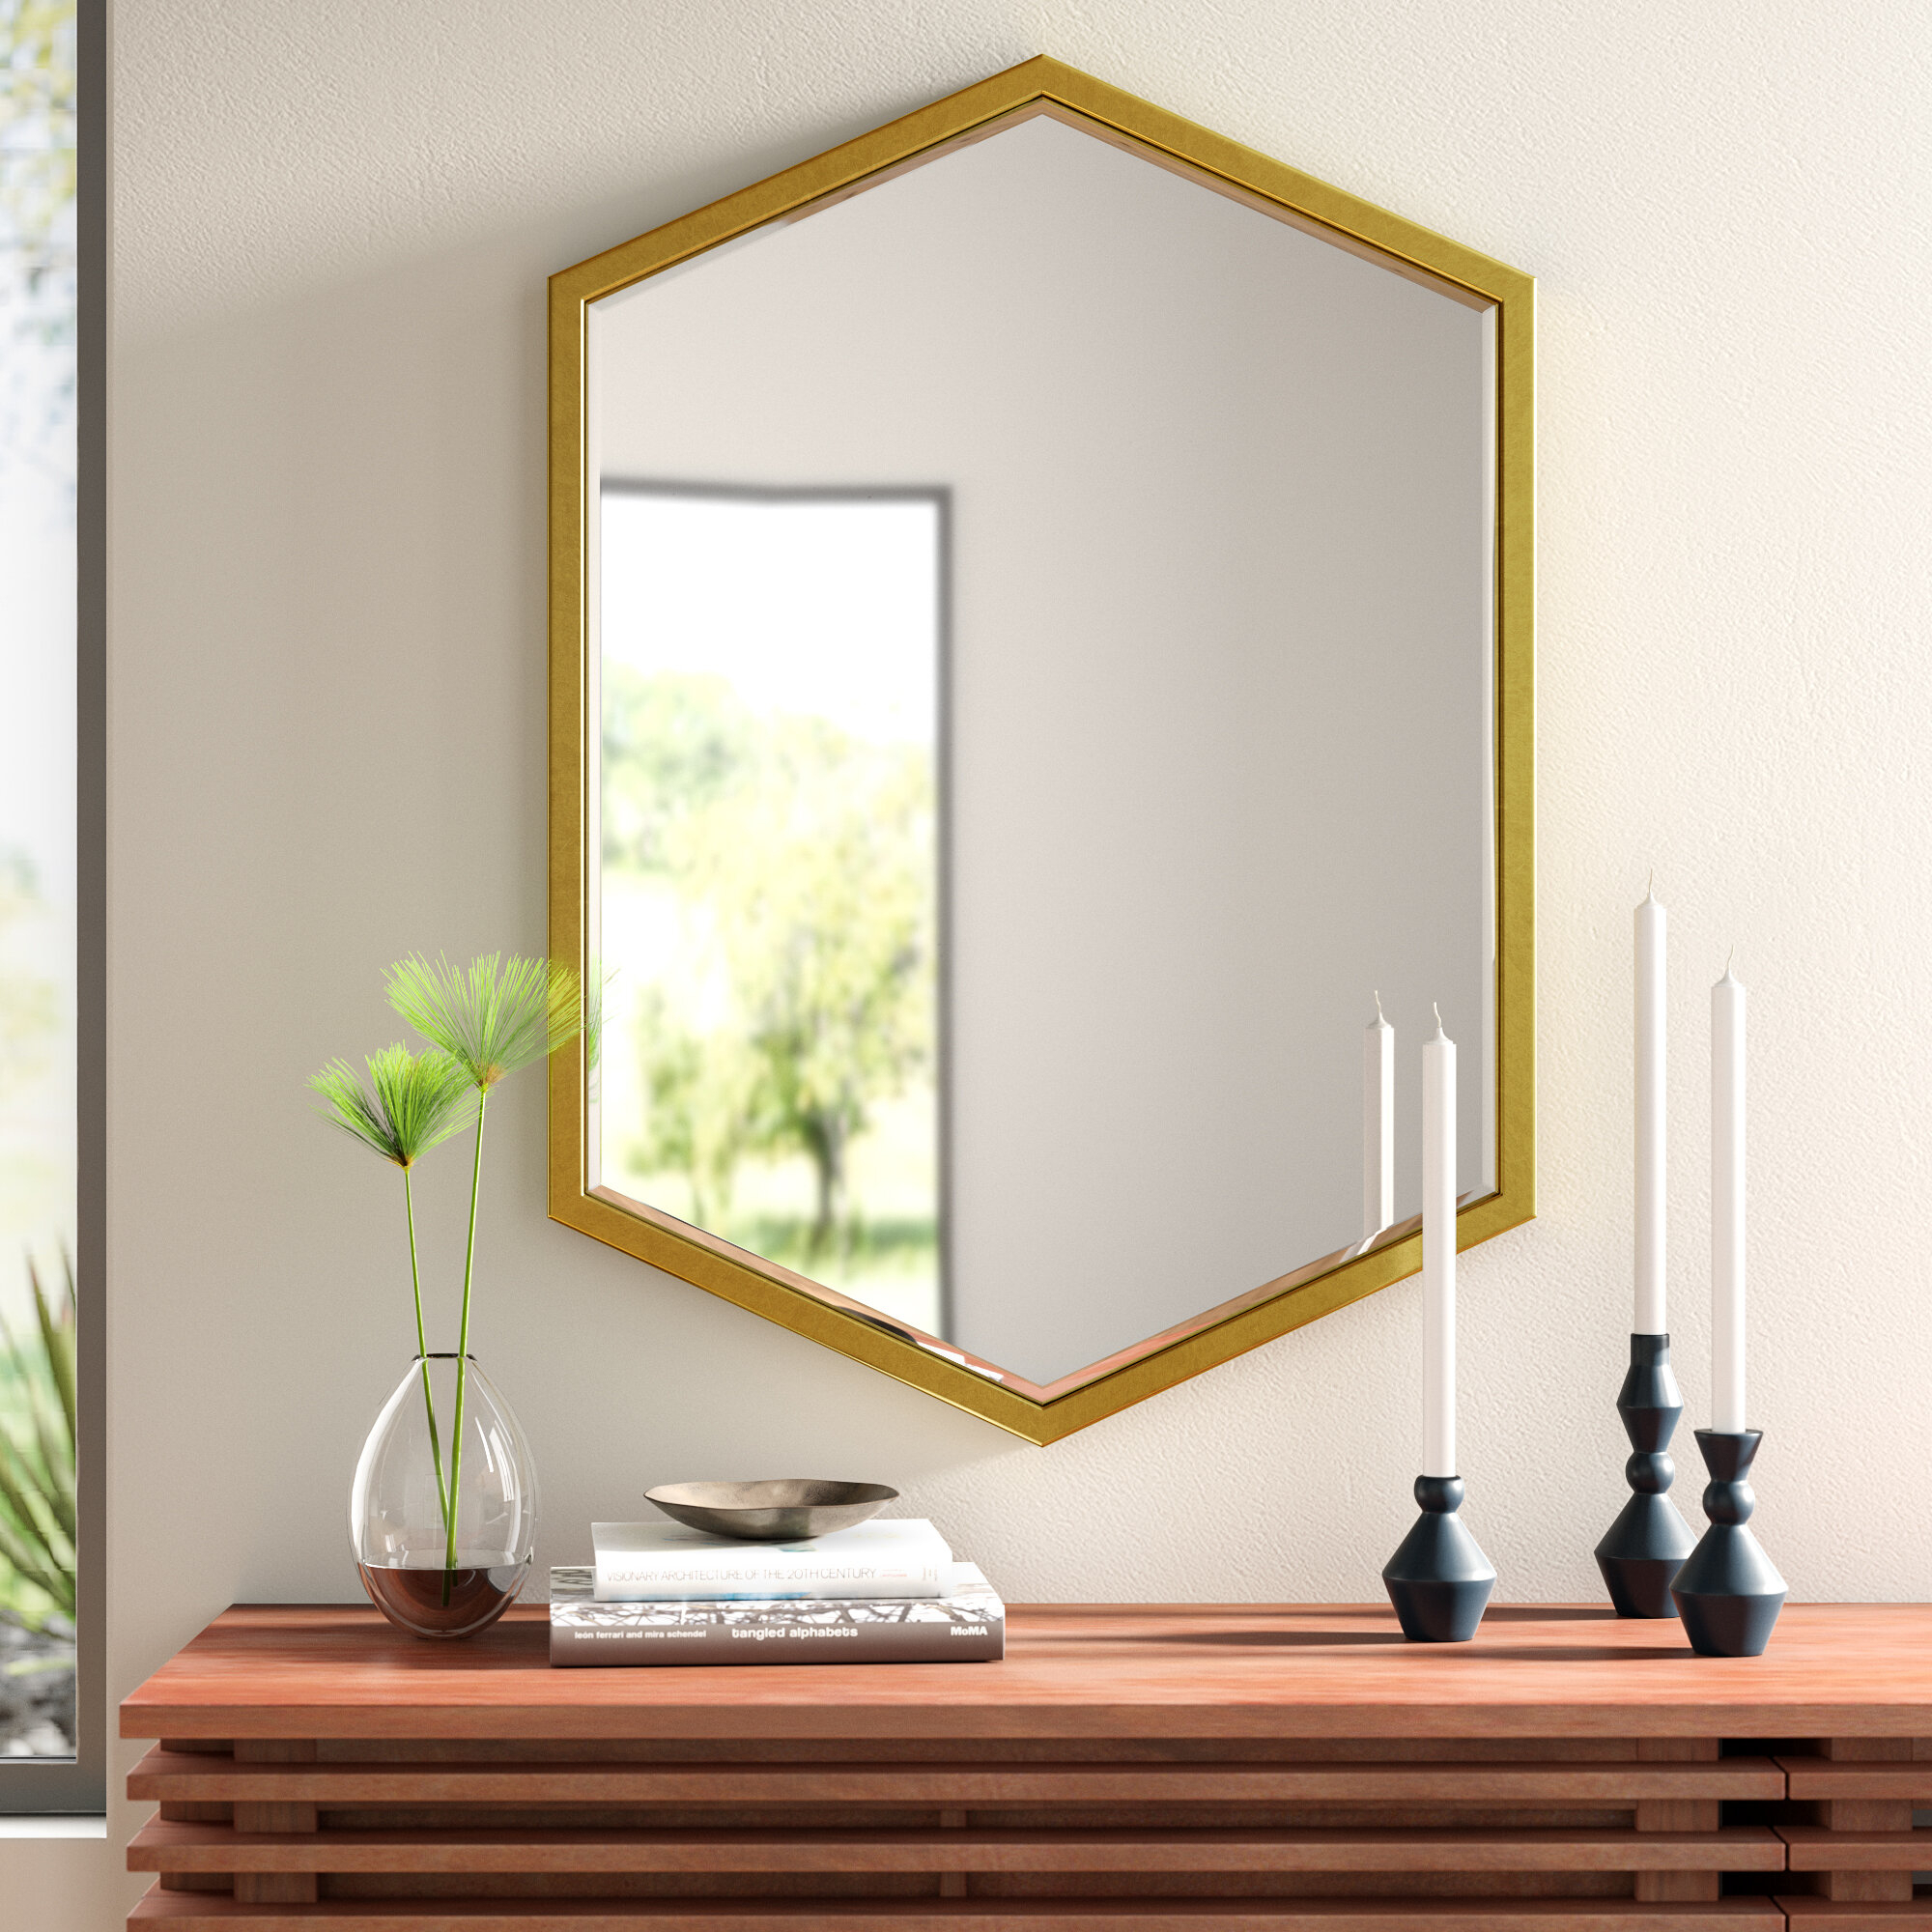 Modern & Contemporary Framed Wall Mirror | Allmodern for Rectangle Ornate Geometric Wall Mirrors (Image 15 of 30)